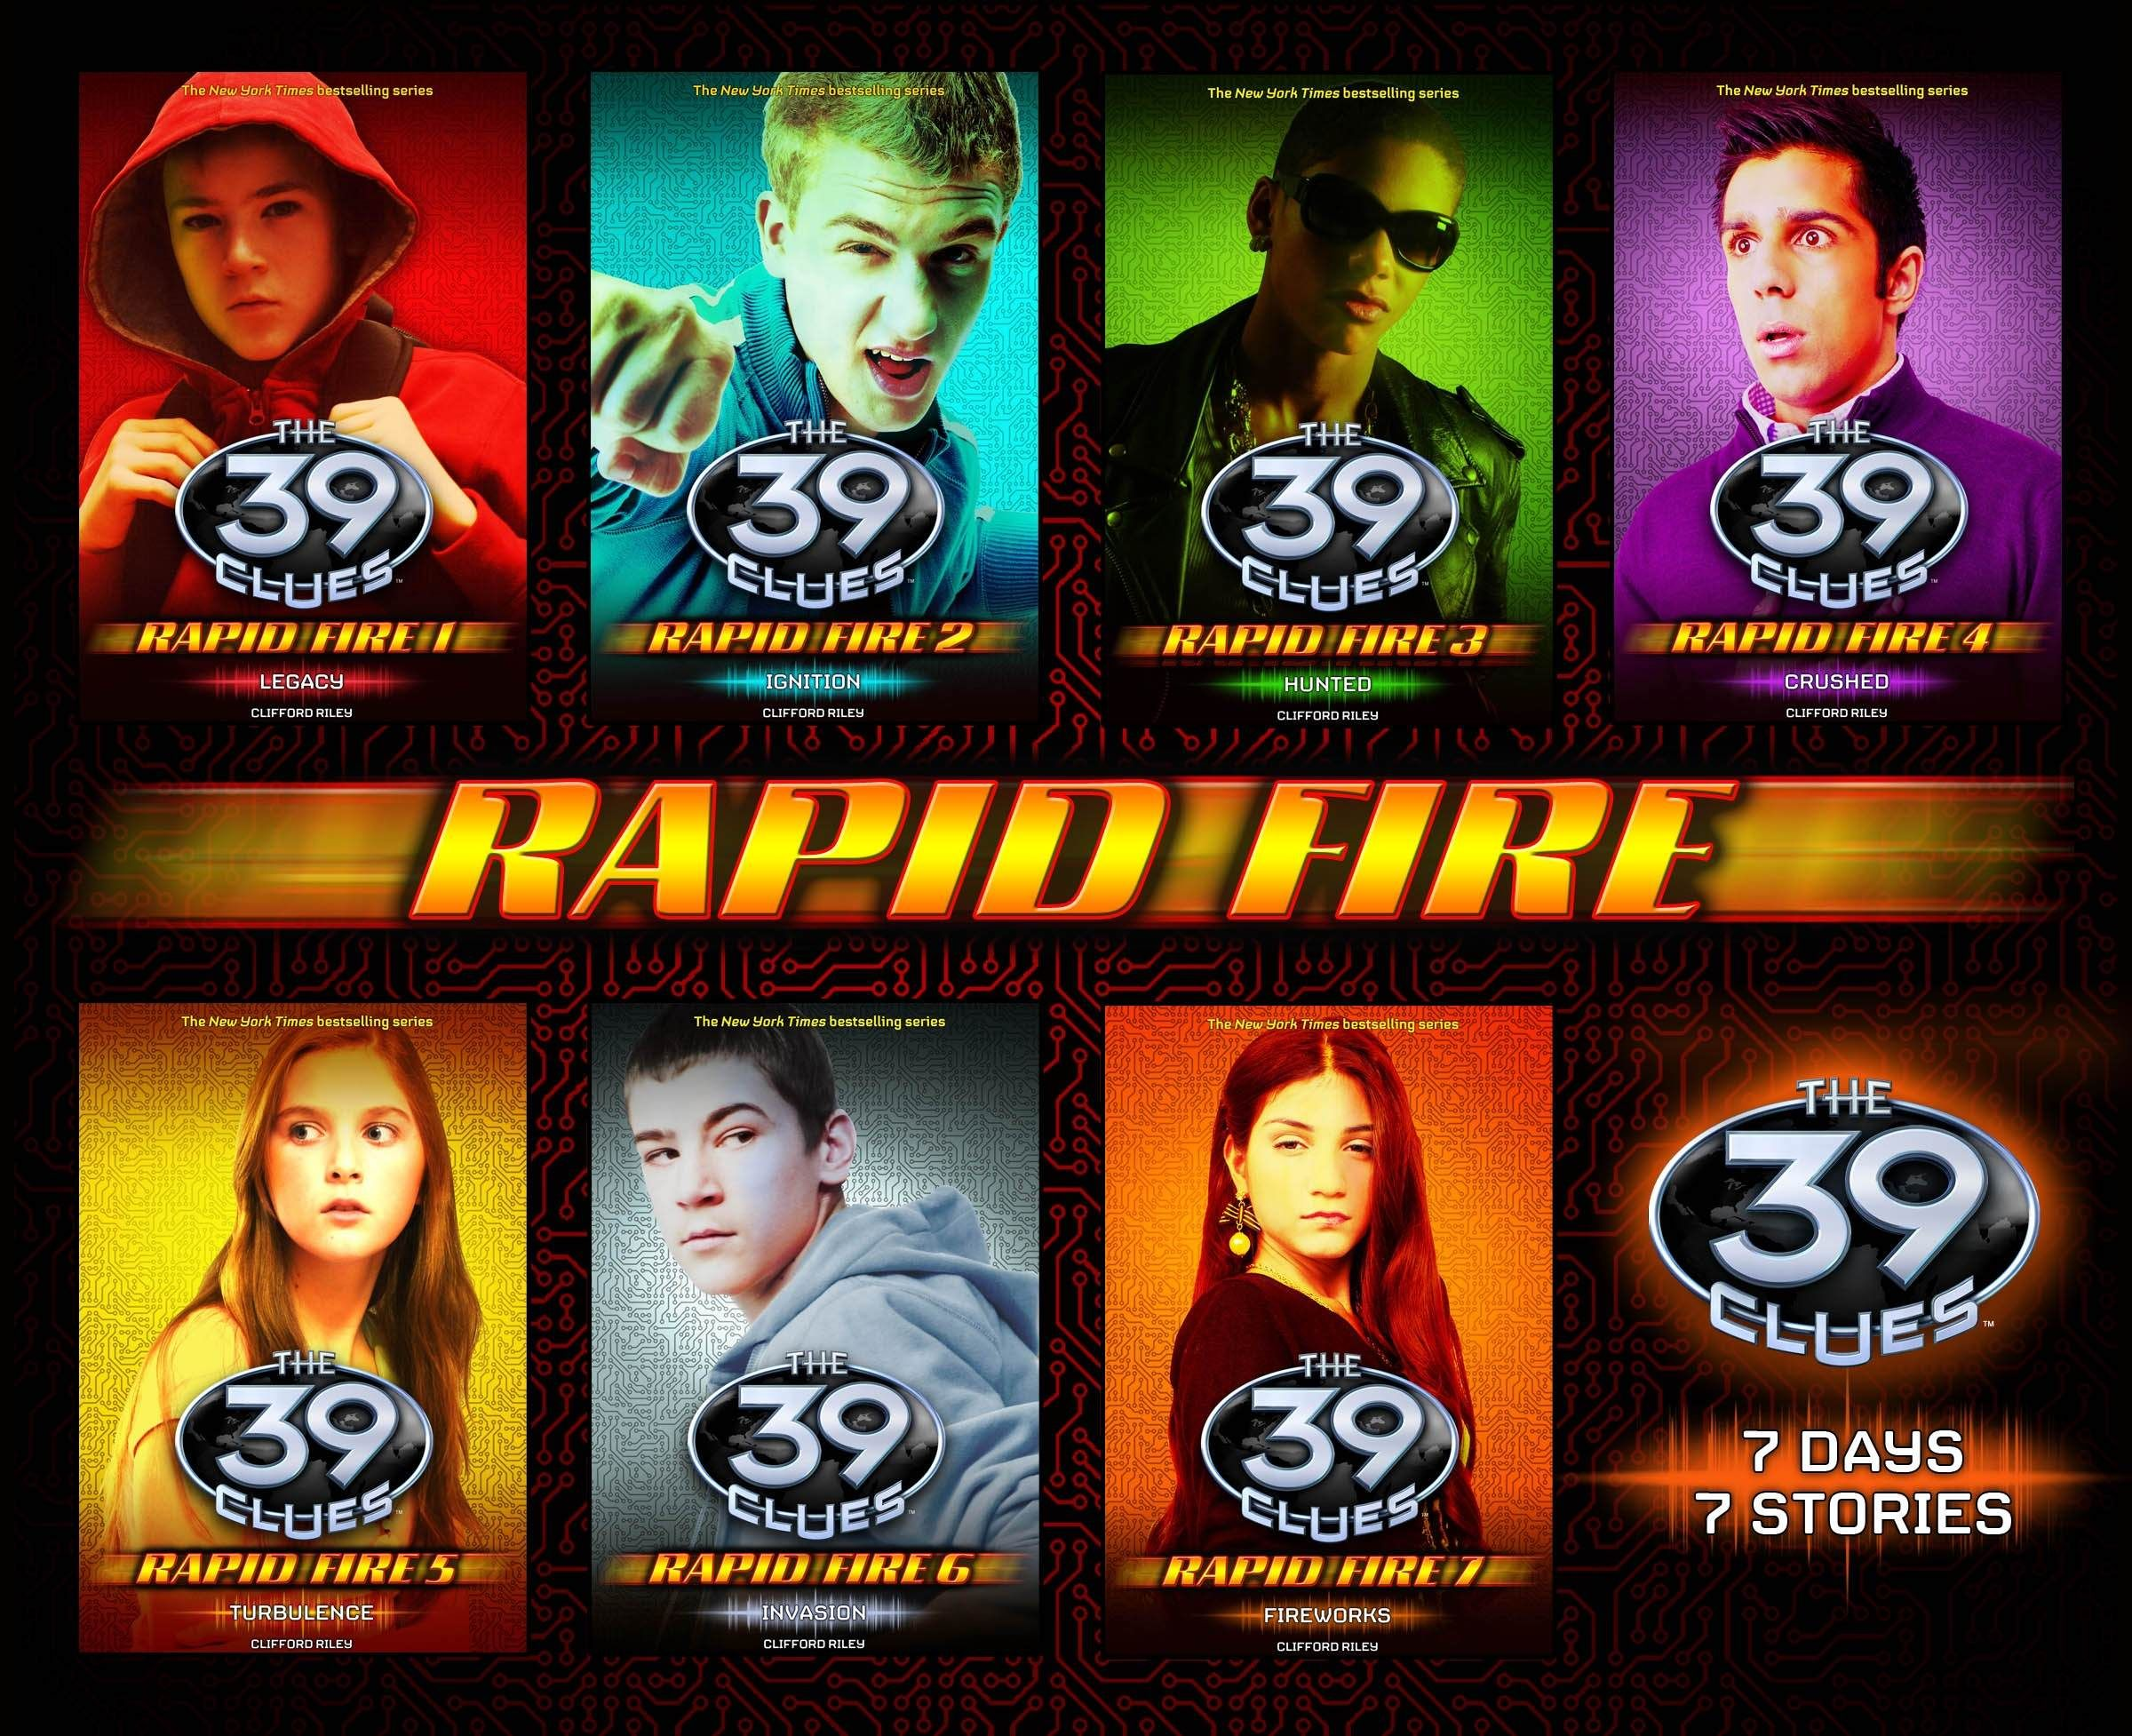 The 39 Clues: Rapid Fire 2: Ignition